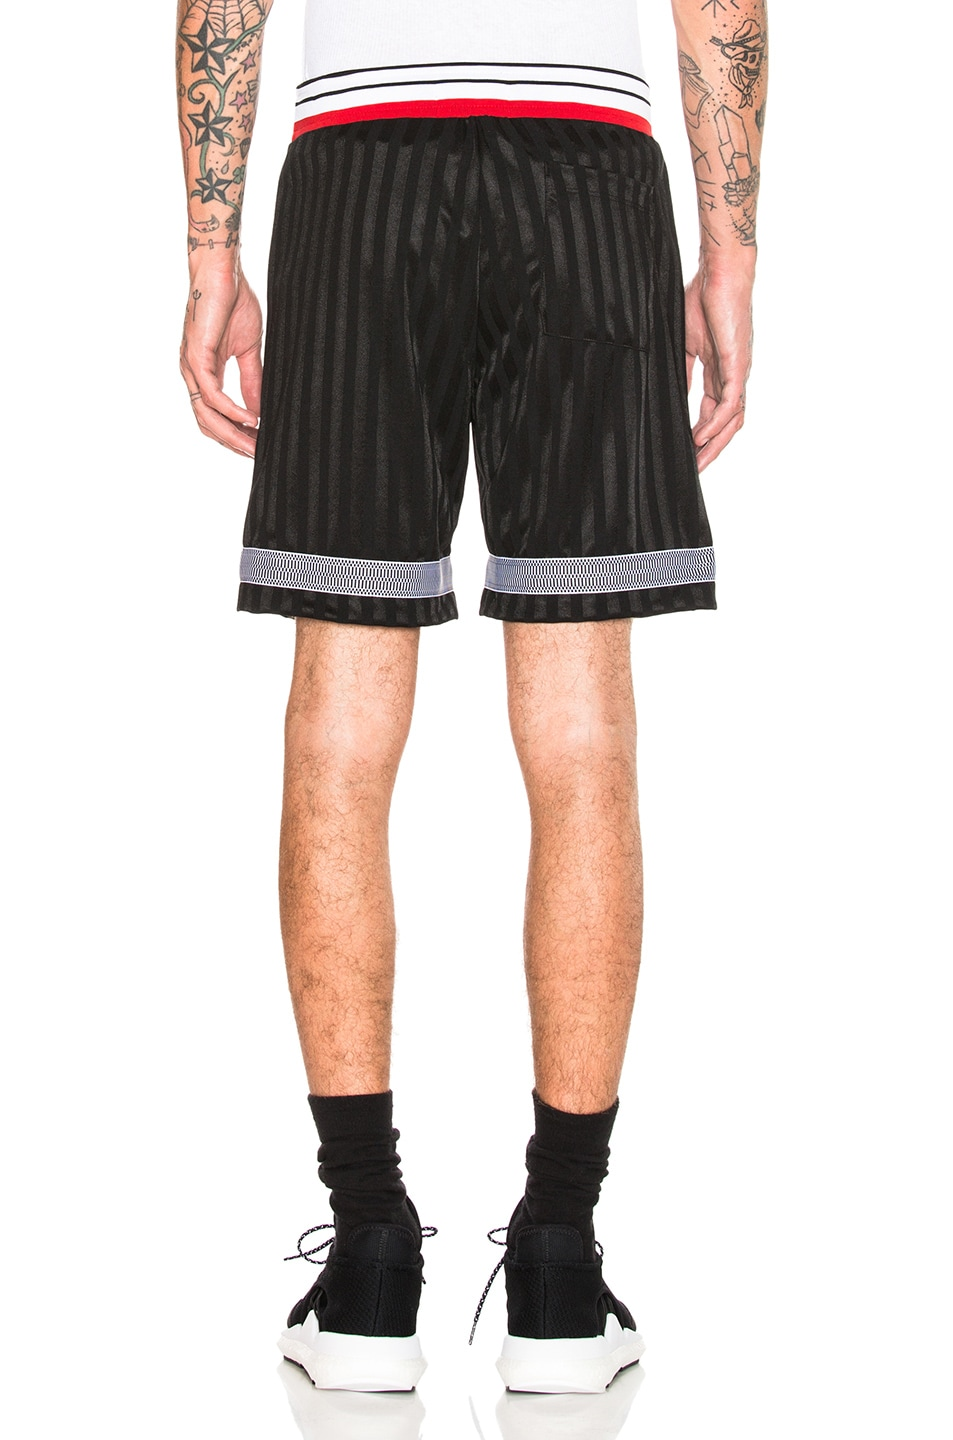 on sale JOHN ELLIOTT Soccer Shorts Black